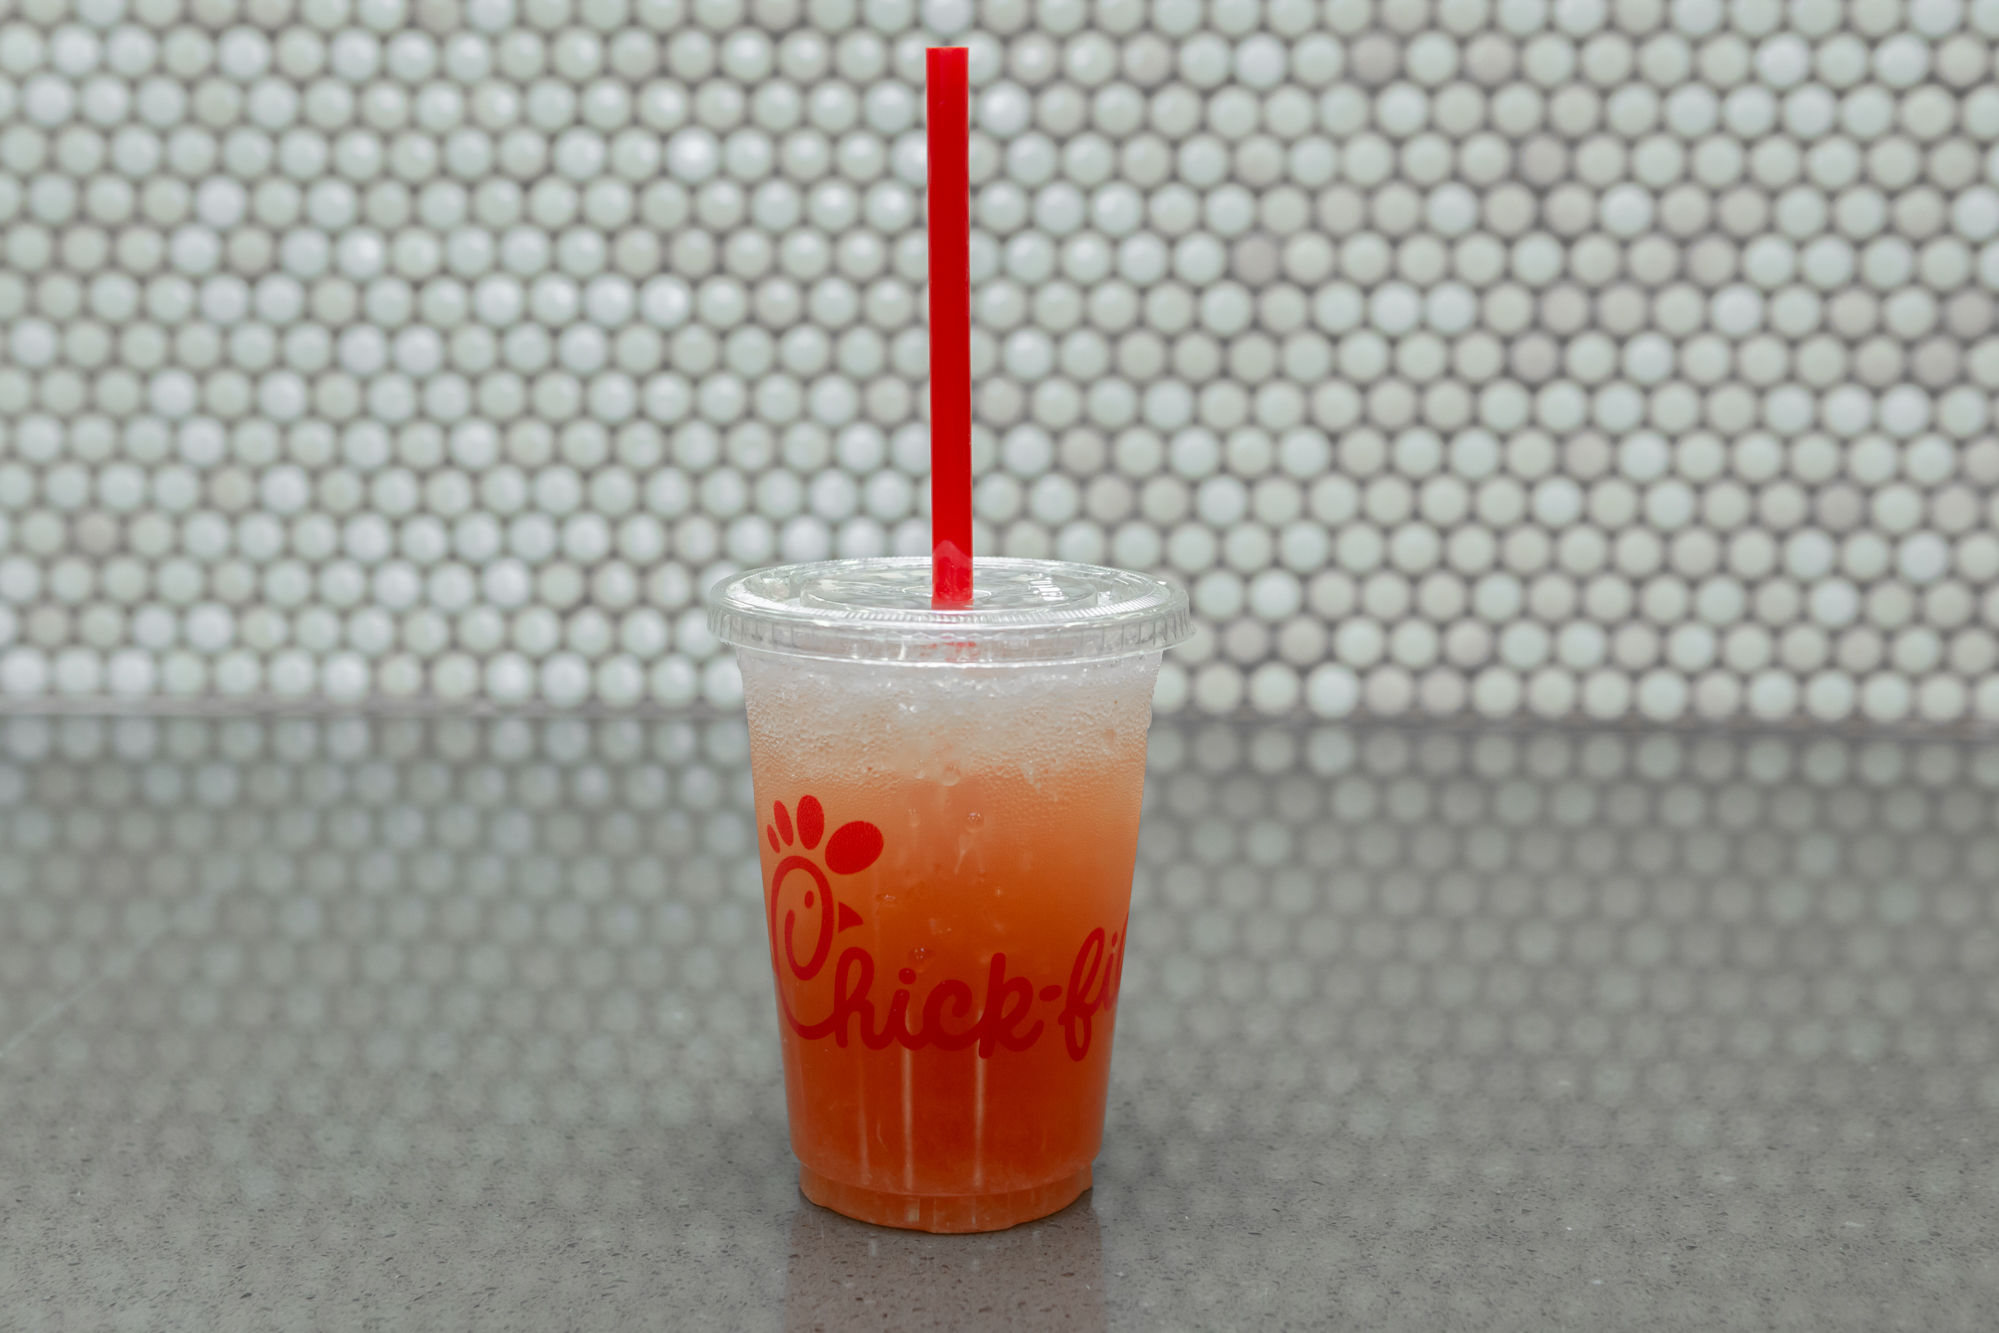 Chick-fil-A Debuts a New Lemonade Flavor